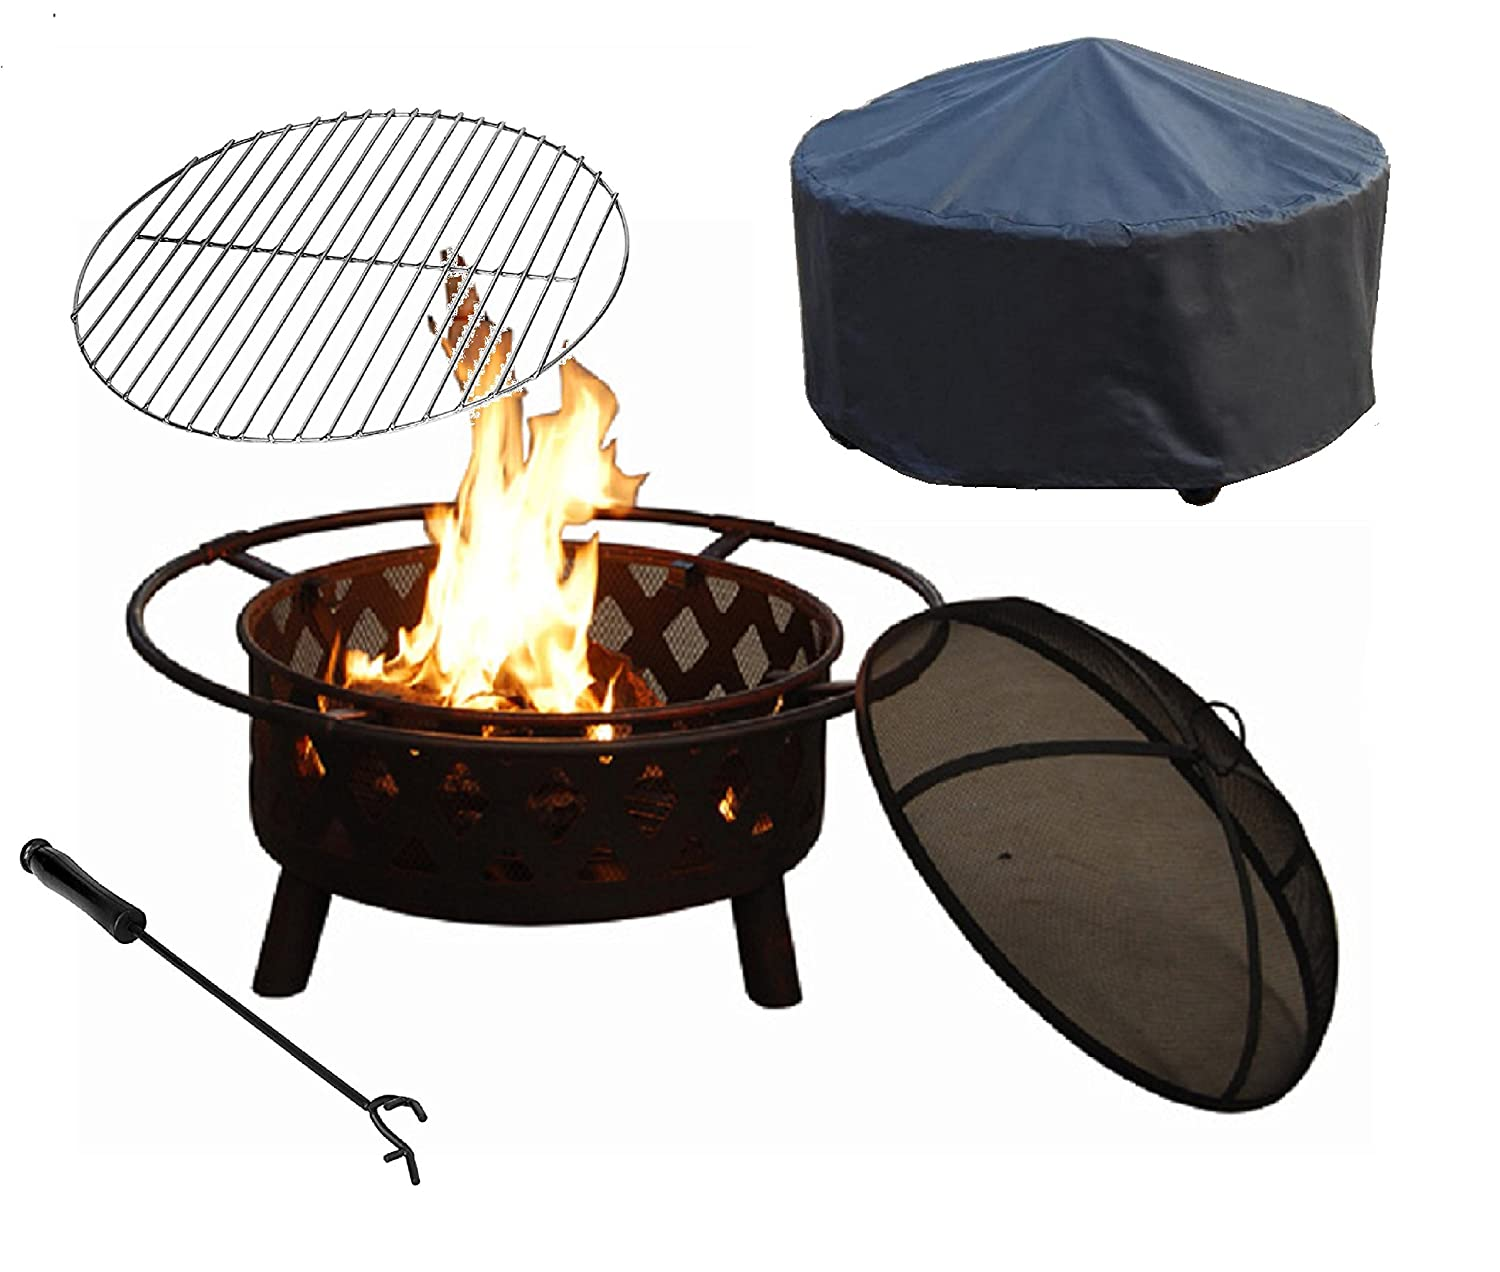 CozyFlame Crossweave Fire Pit Steel Folding Mesh Fire Burning Pit with Free Grill Grate and Cover